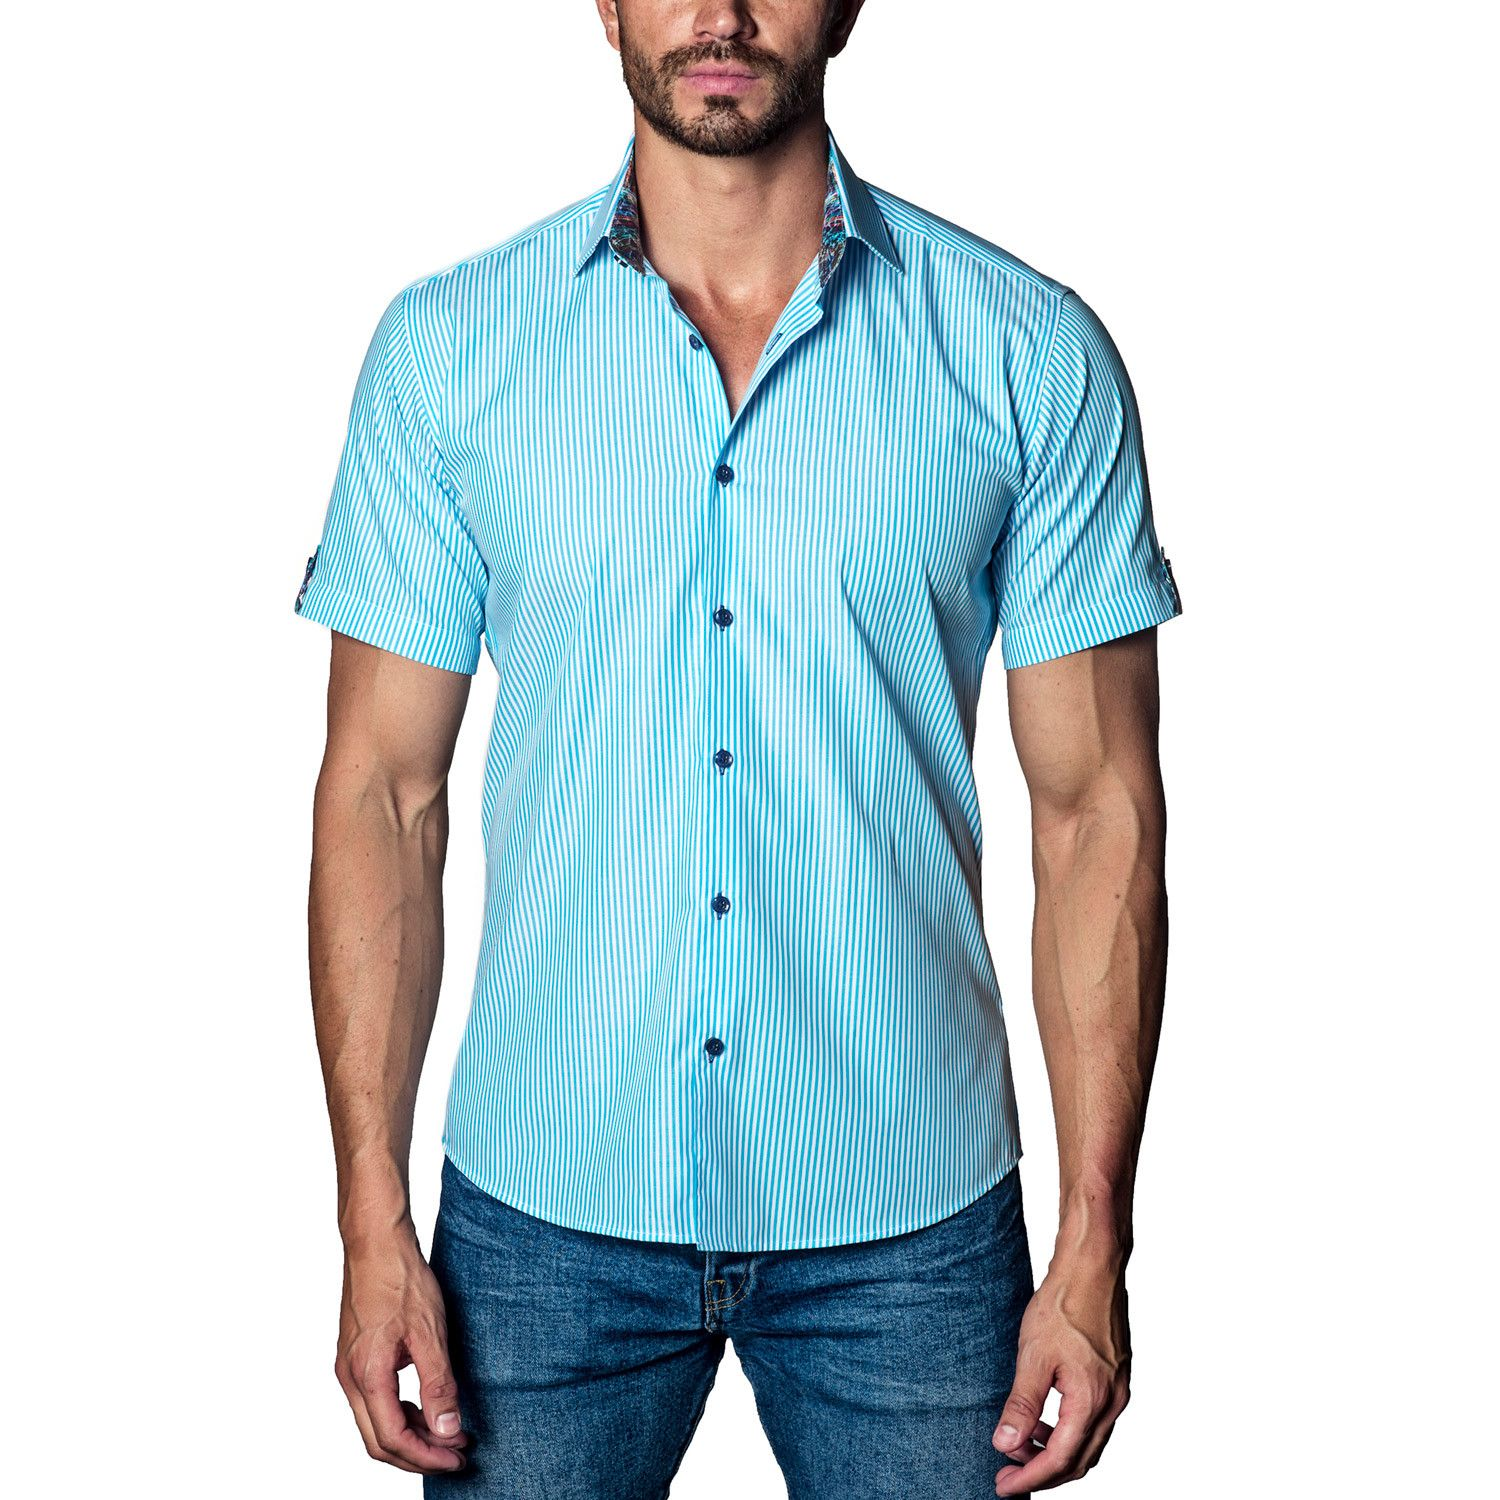 Flannel shirts yes or no  Striped Woven ButtonUp  Blue  Men Fashion  Pinterest